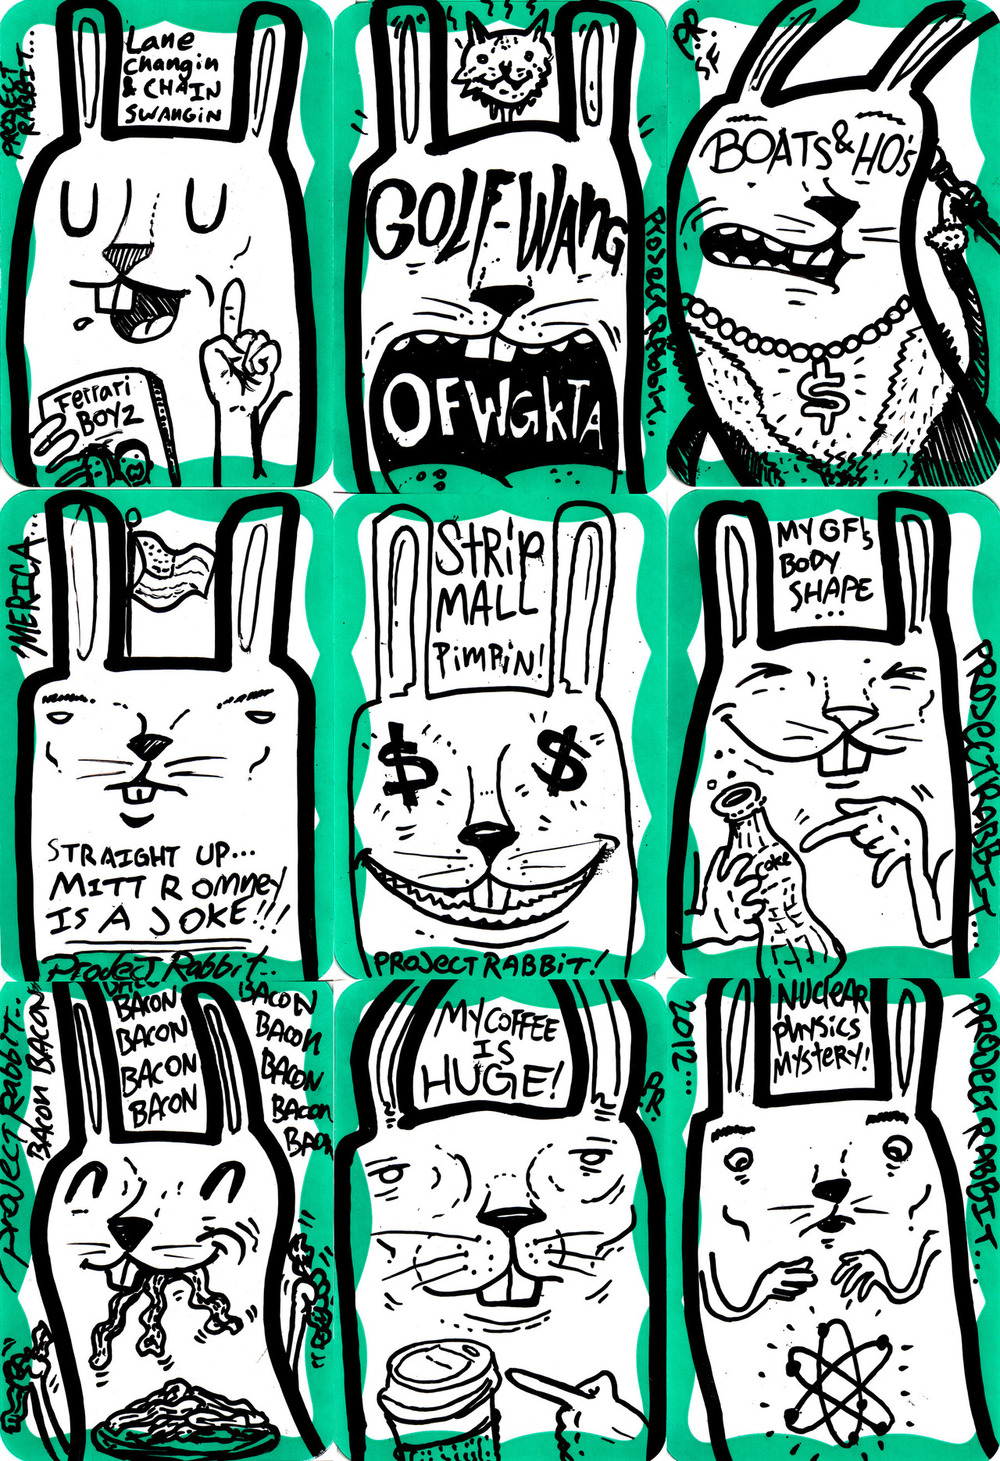 Project Rabbit Stickers from 2012. Green Series